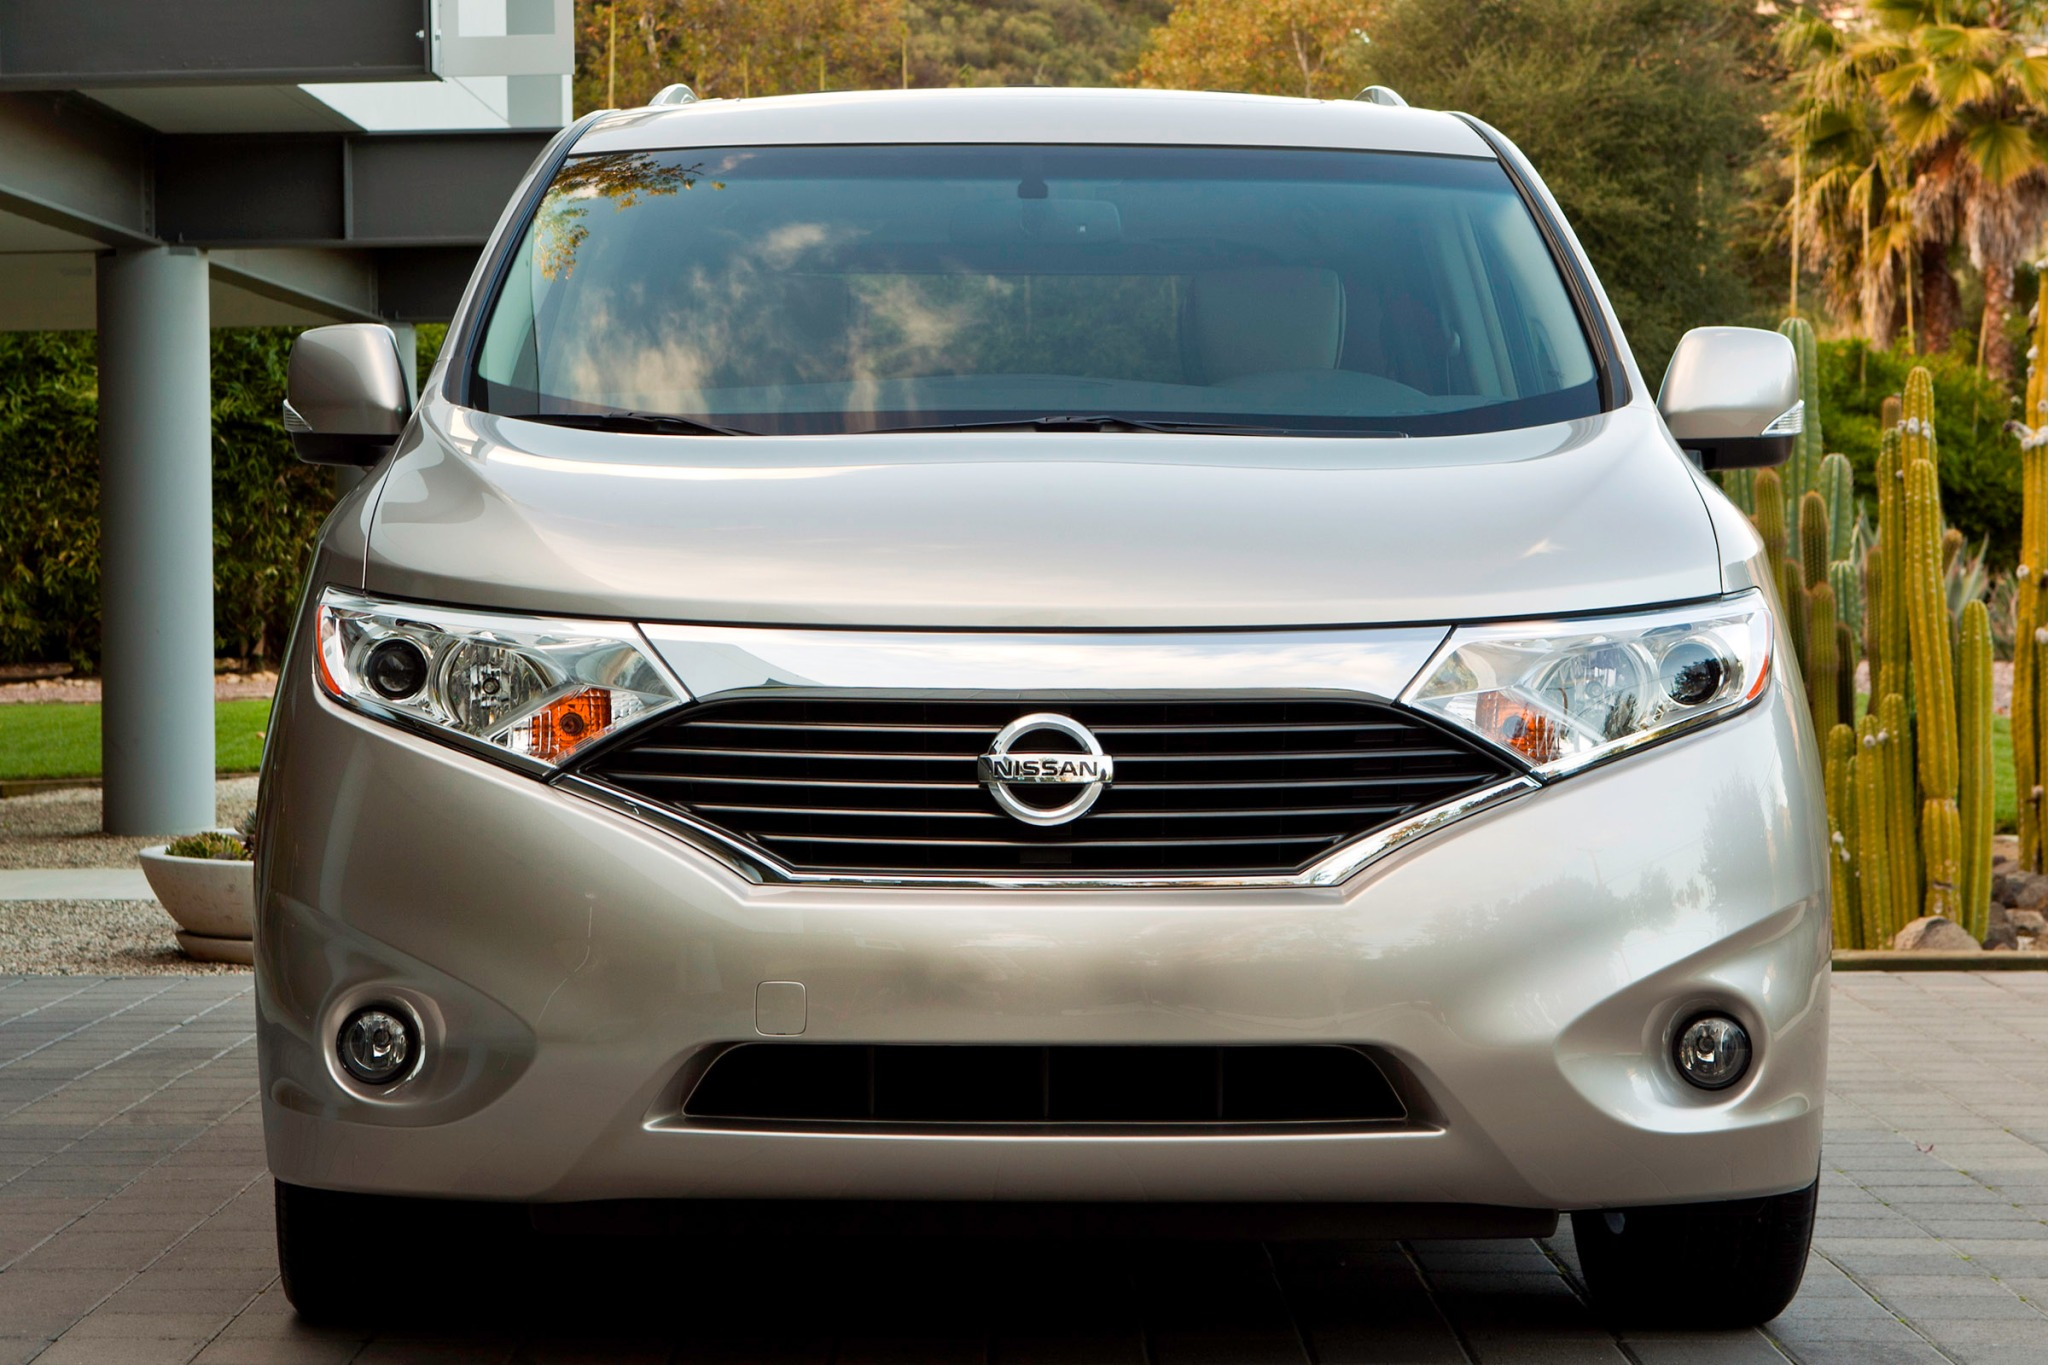 2012 Nissan Quest LE Pass interior #6